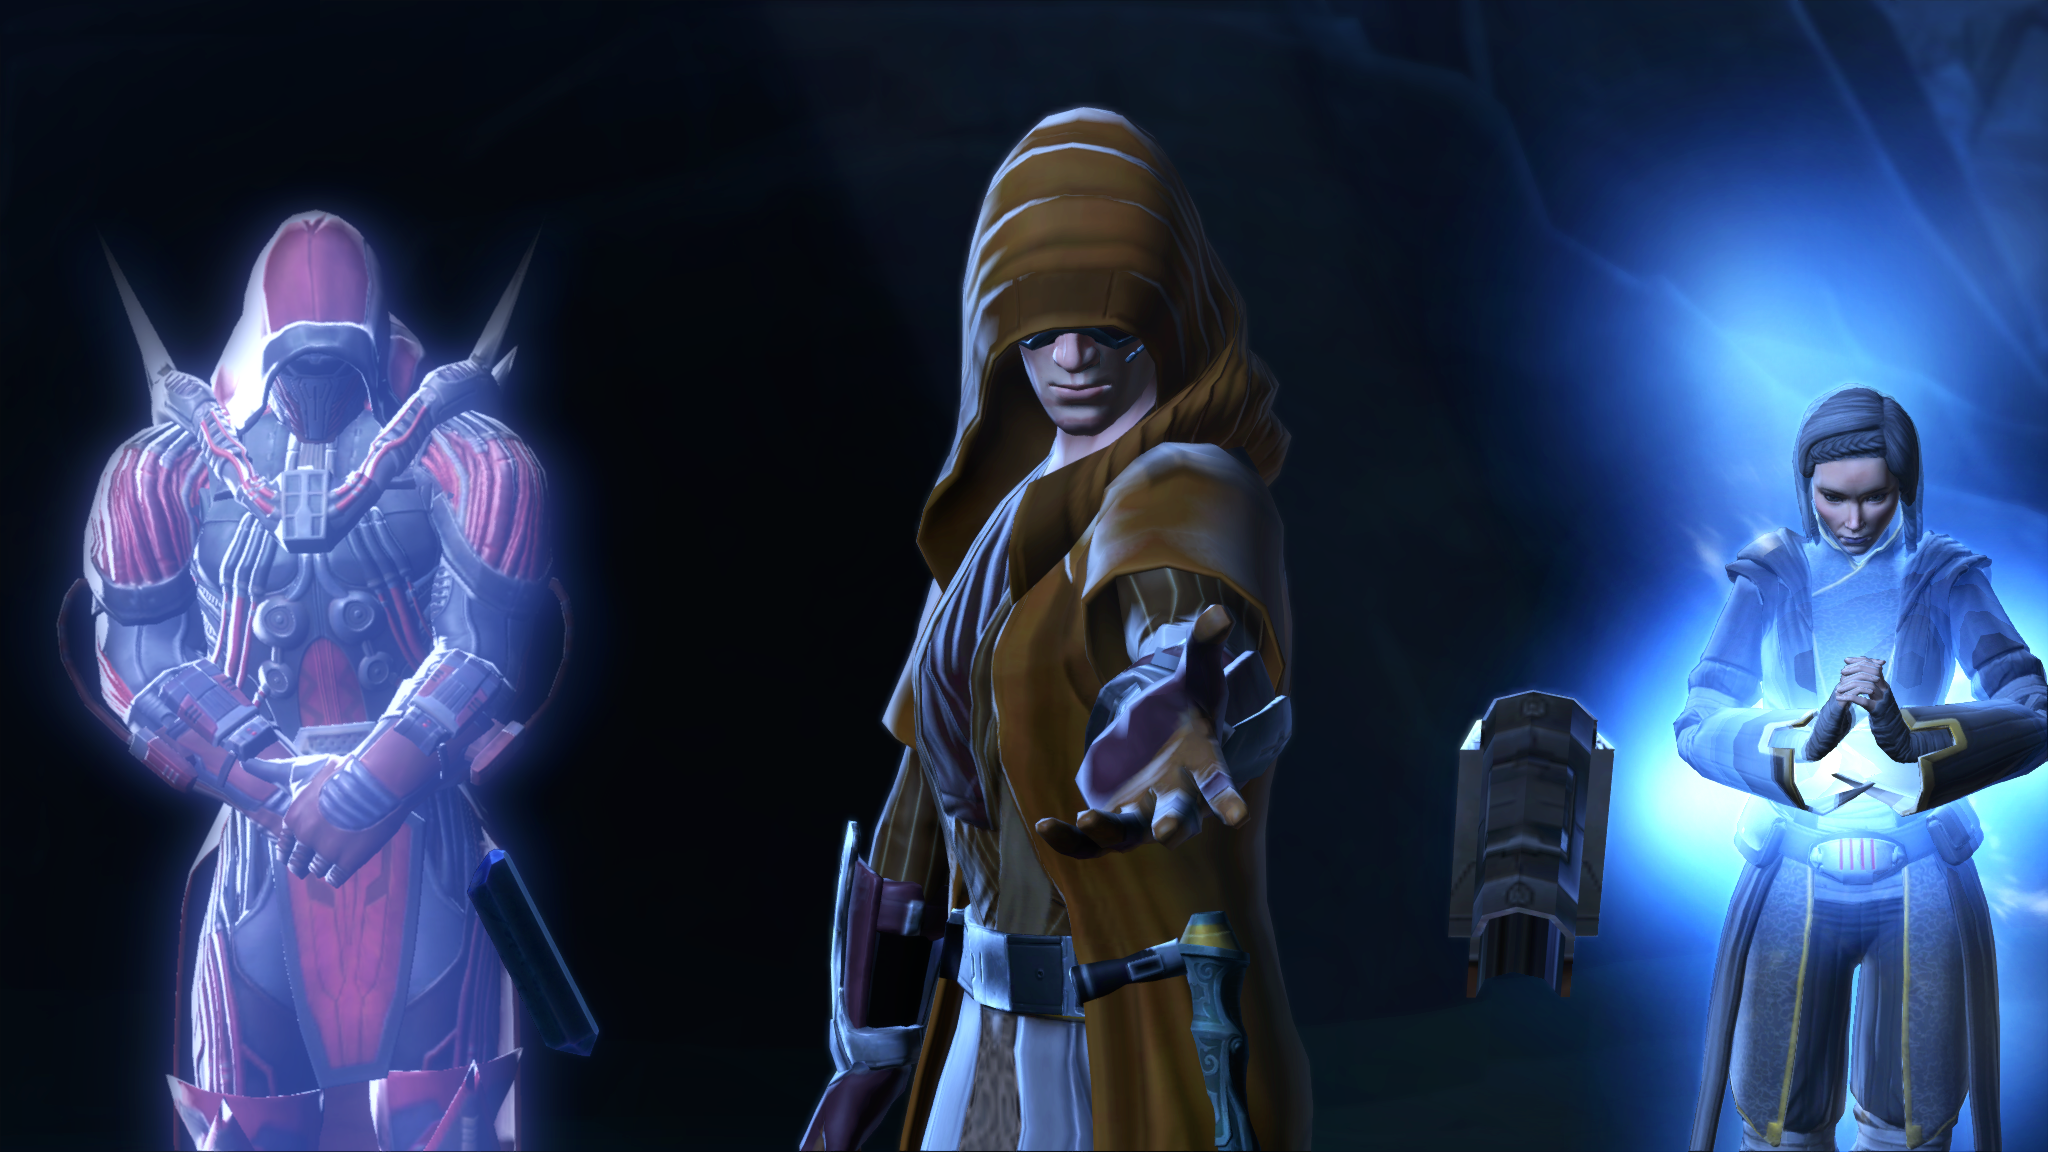 SWTOR - KOTFE - Emfour , Satele Shan and Darth Marr - a